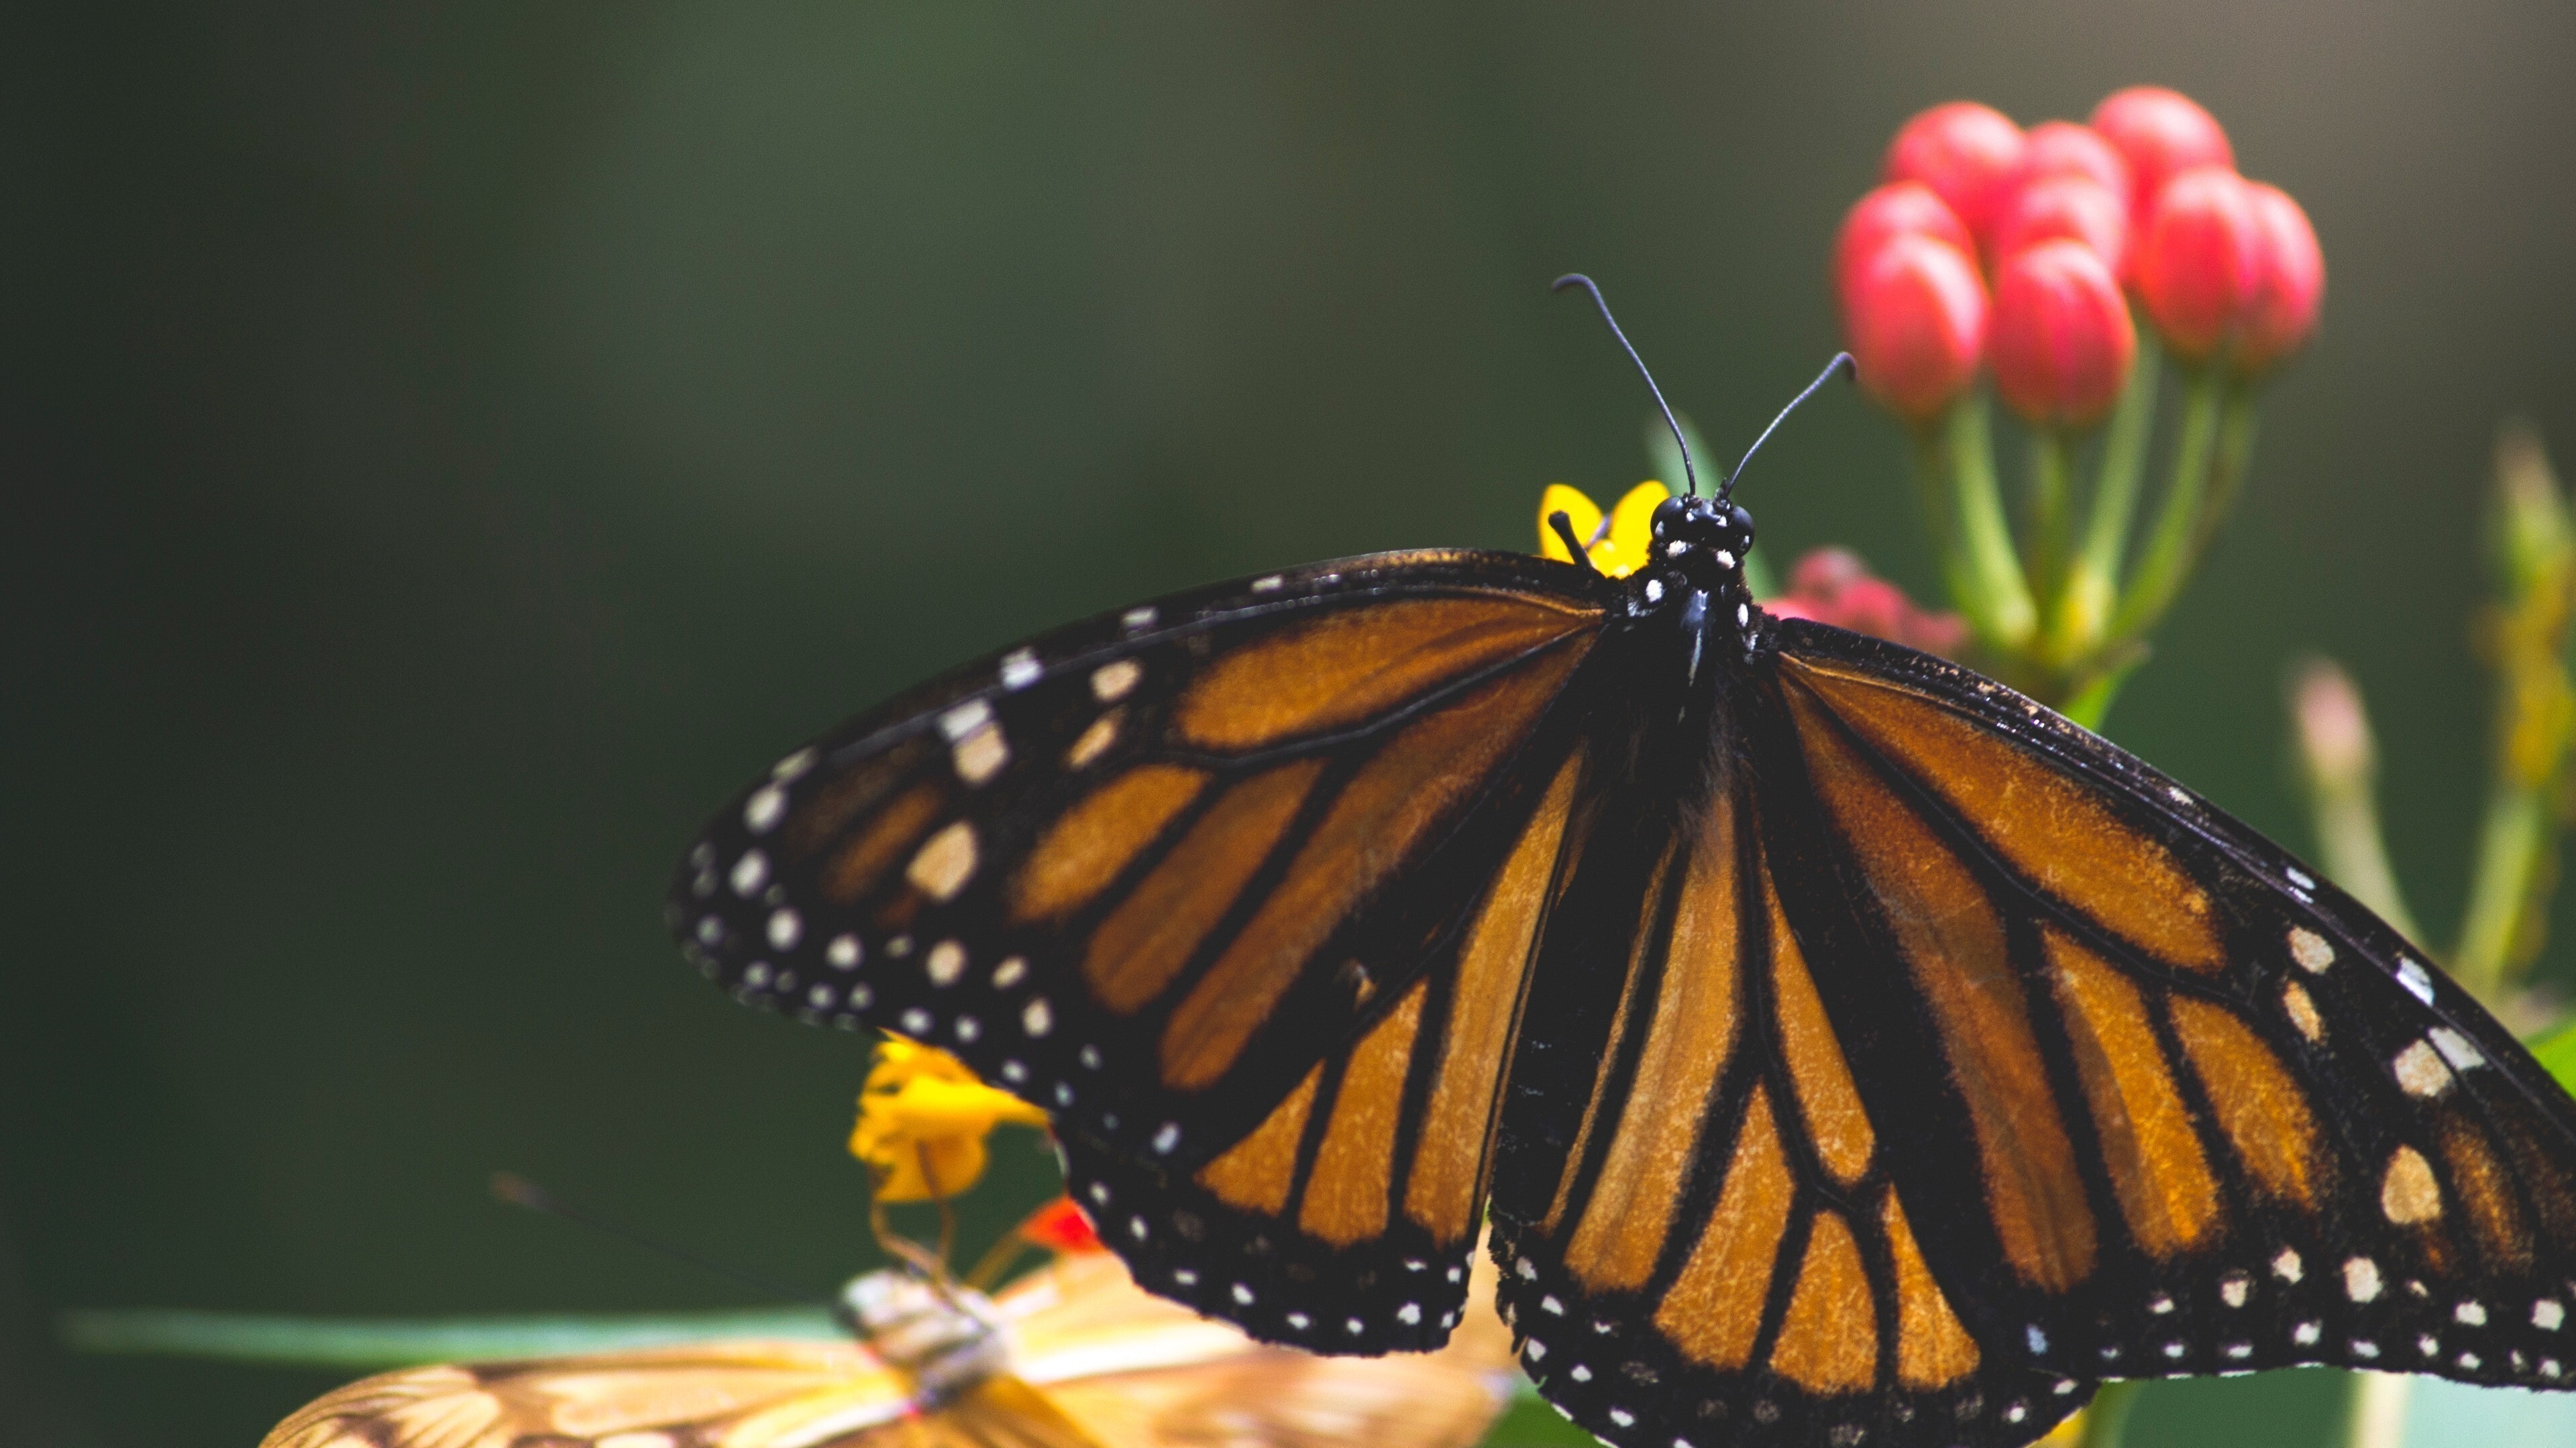 Insect Butterfly 4K Image | HD Wallpapers